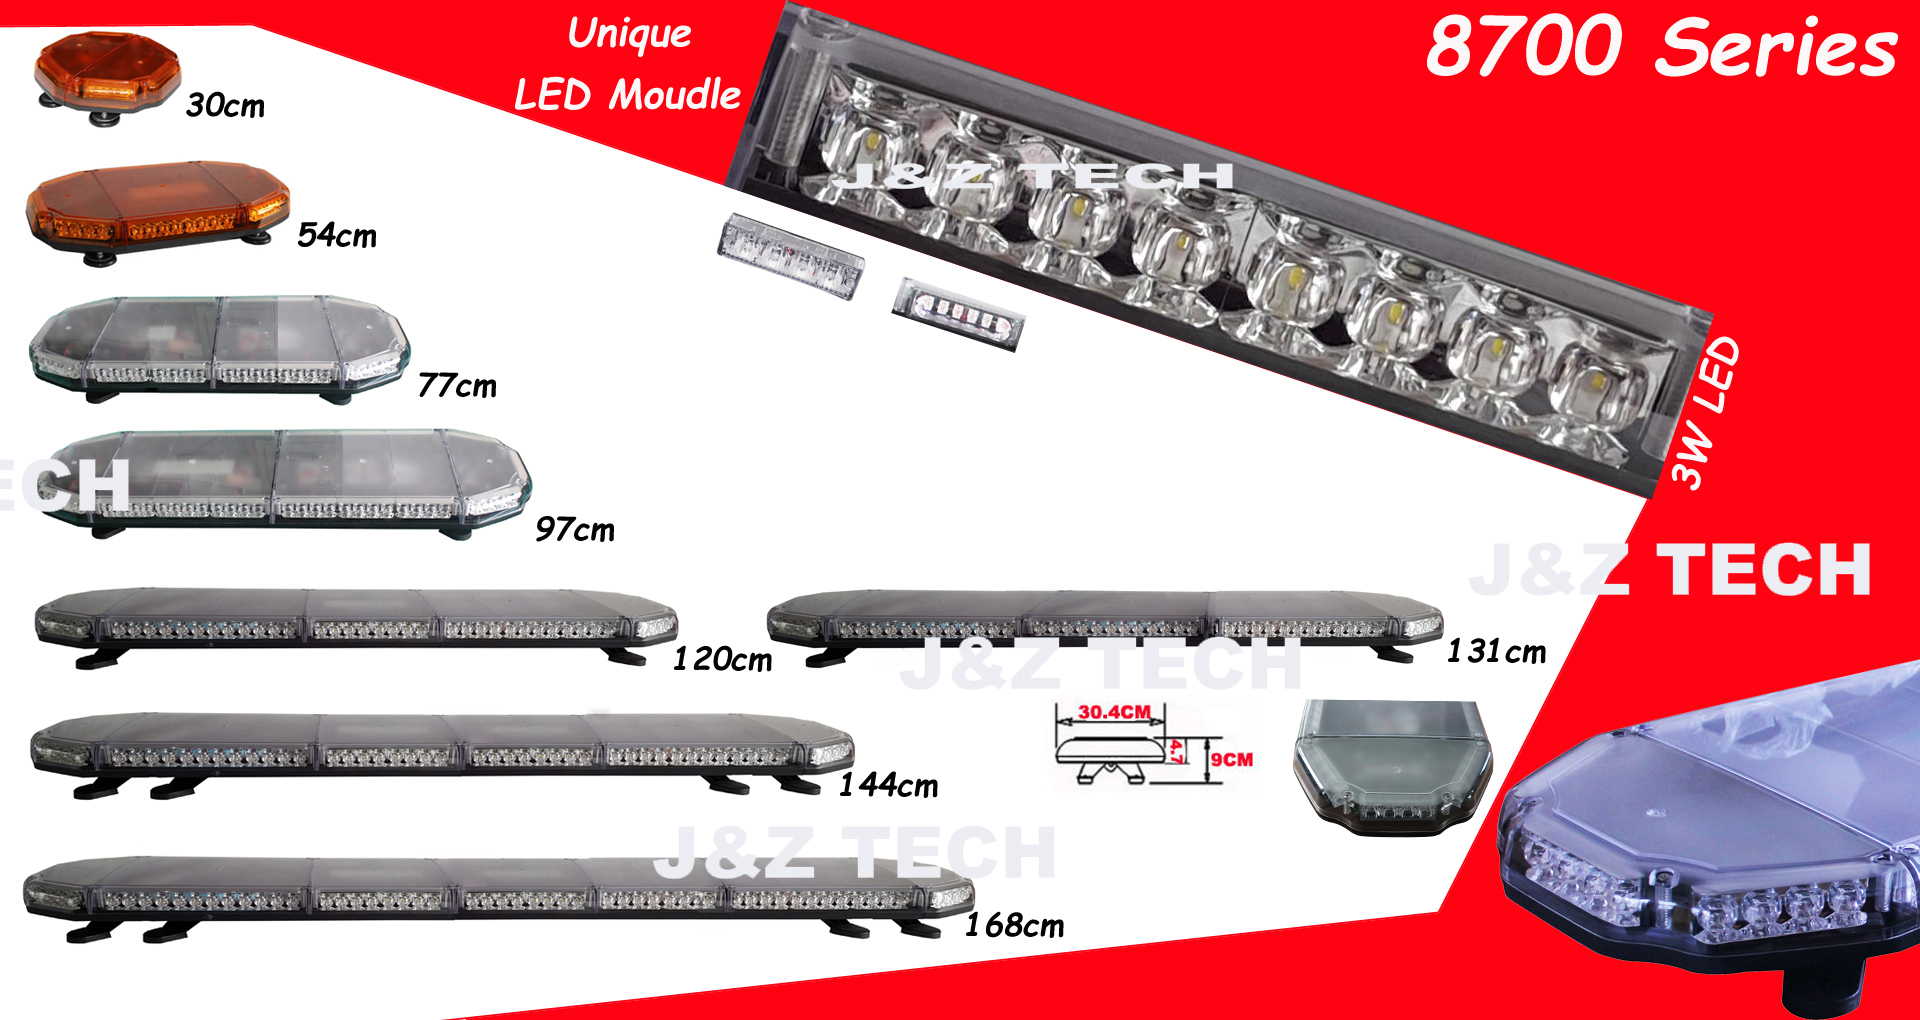 8700 unique design lightbar banner.jpg